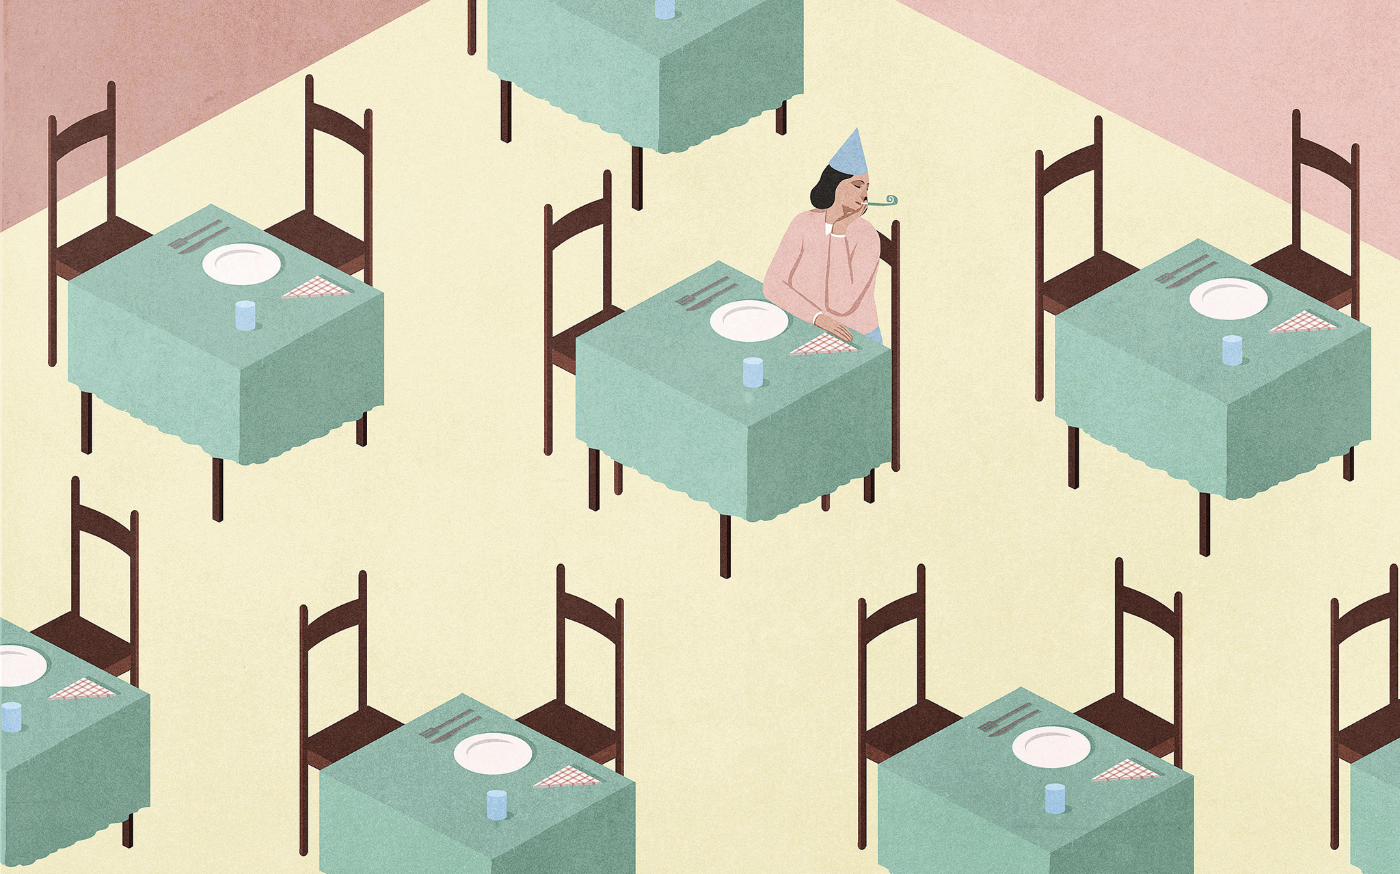 What does it mean to be lonely? - I spoke with 6 people, all from different social circles and varying age groups. The one thing they all had in common was a sense of dread or fear when it came to meeting new people.Illustration by Maggie Ferguson